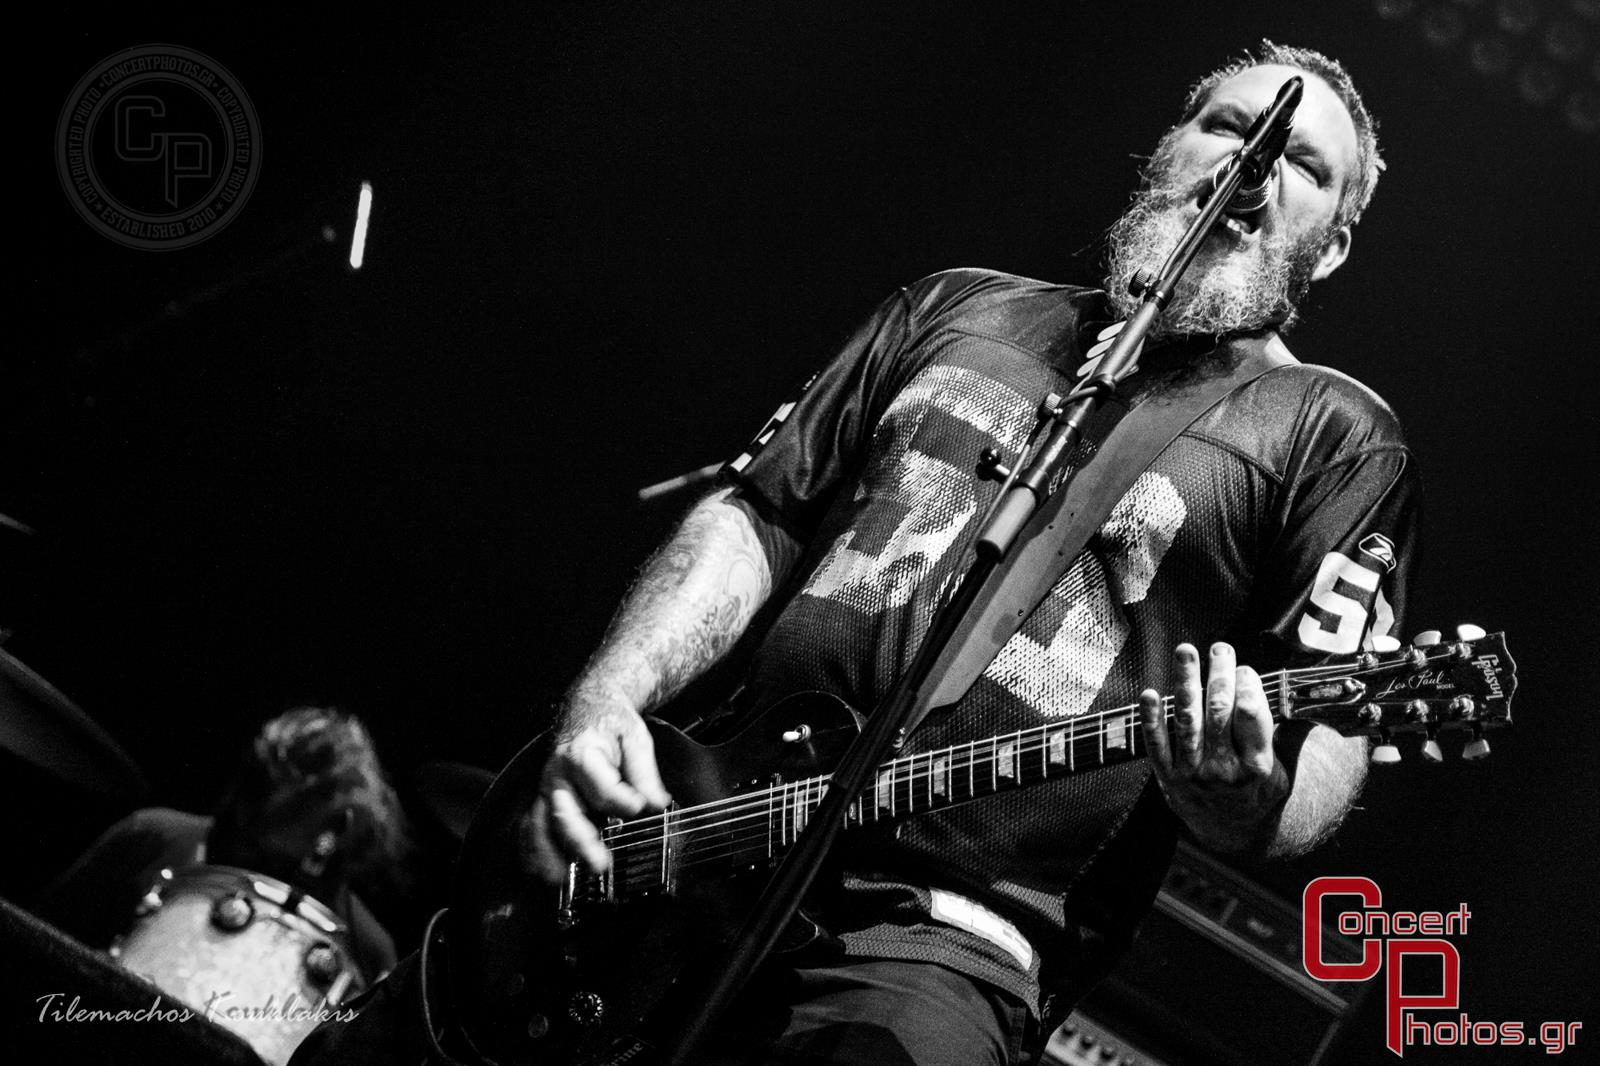 Neurosis-Neurosis photographer:  - concertphotos_20140707_23_56_33-2